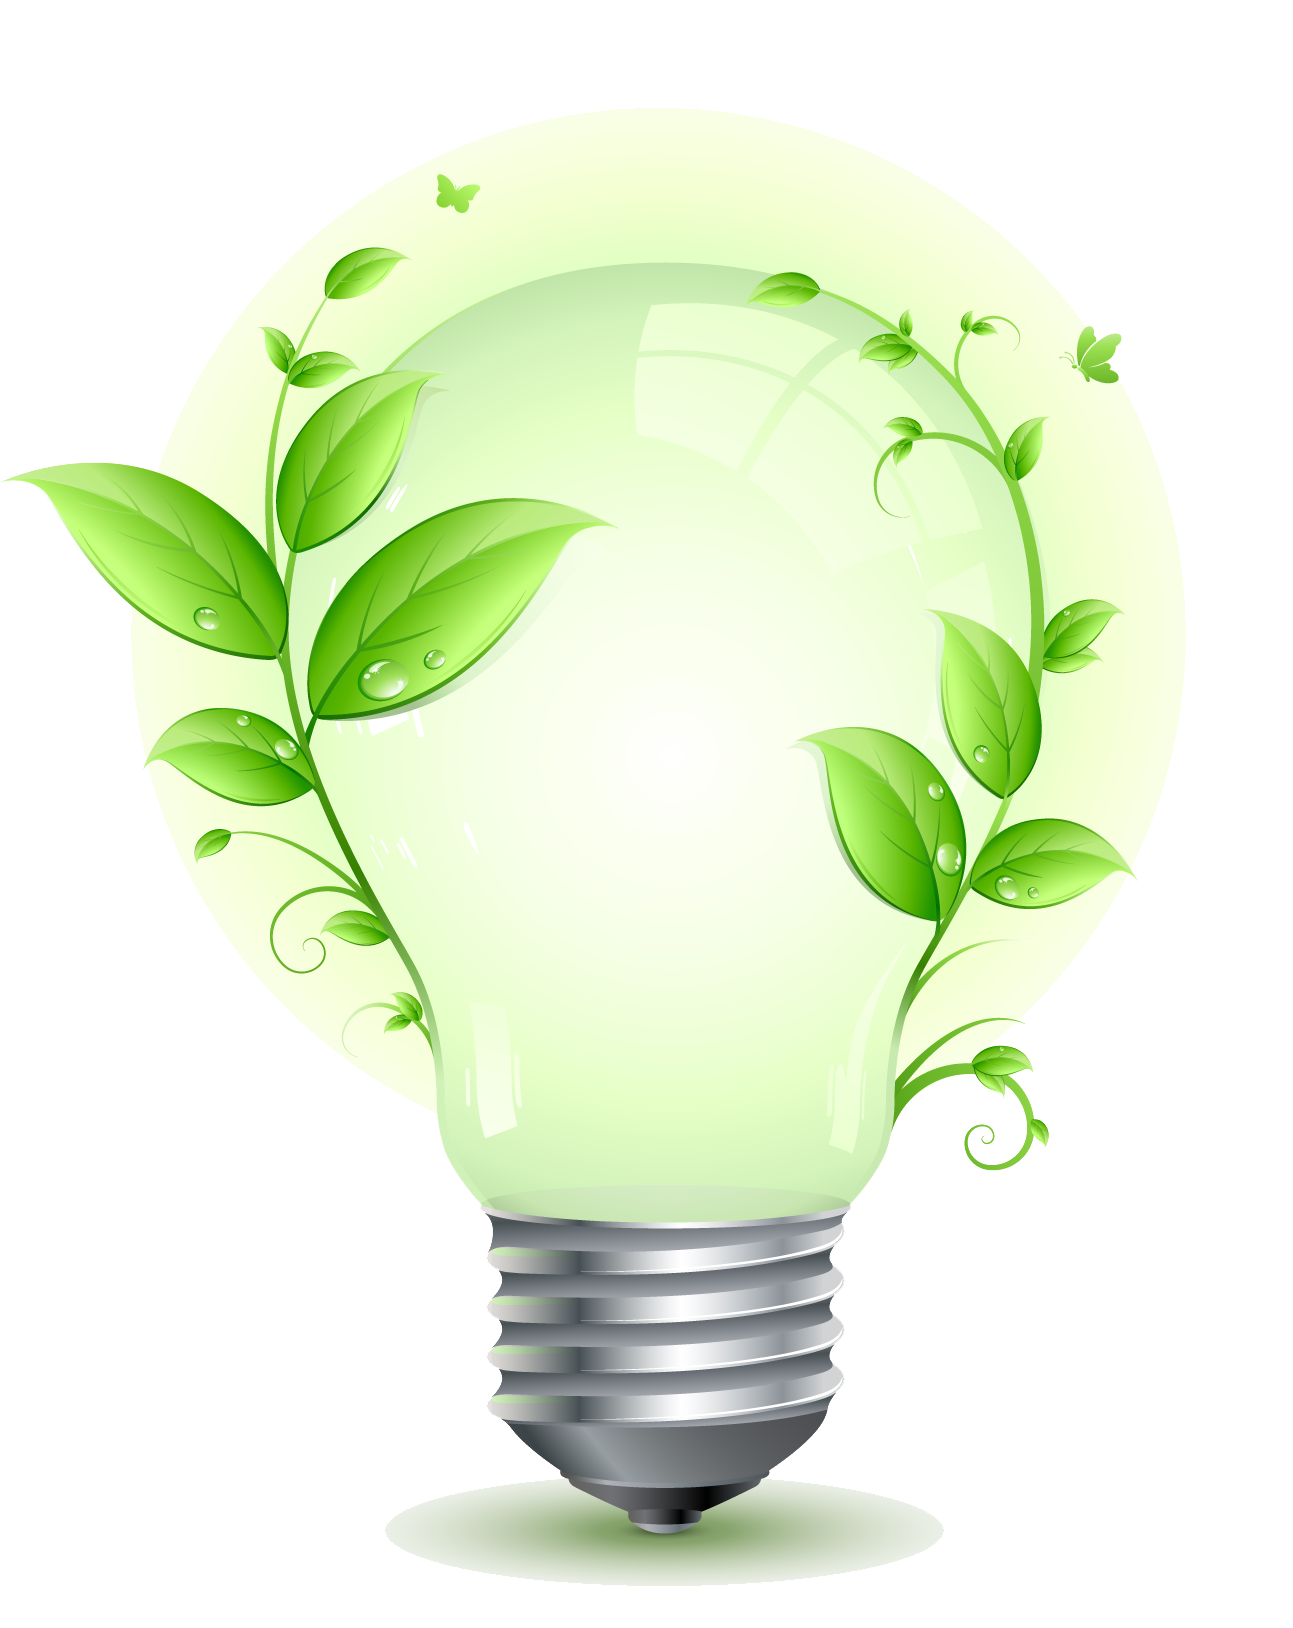 Electrical clipart electric lamp. Save electricity png transparent